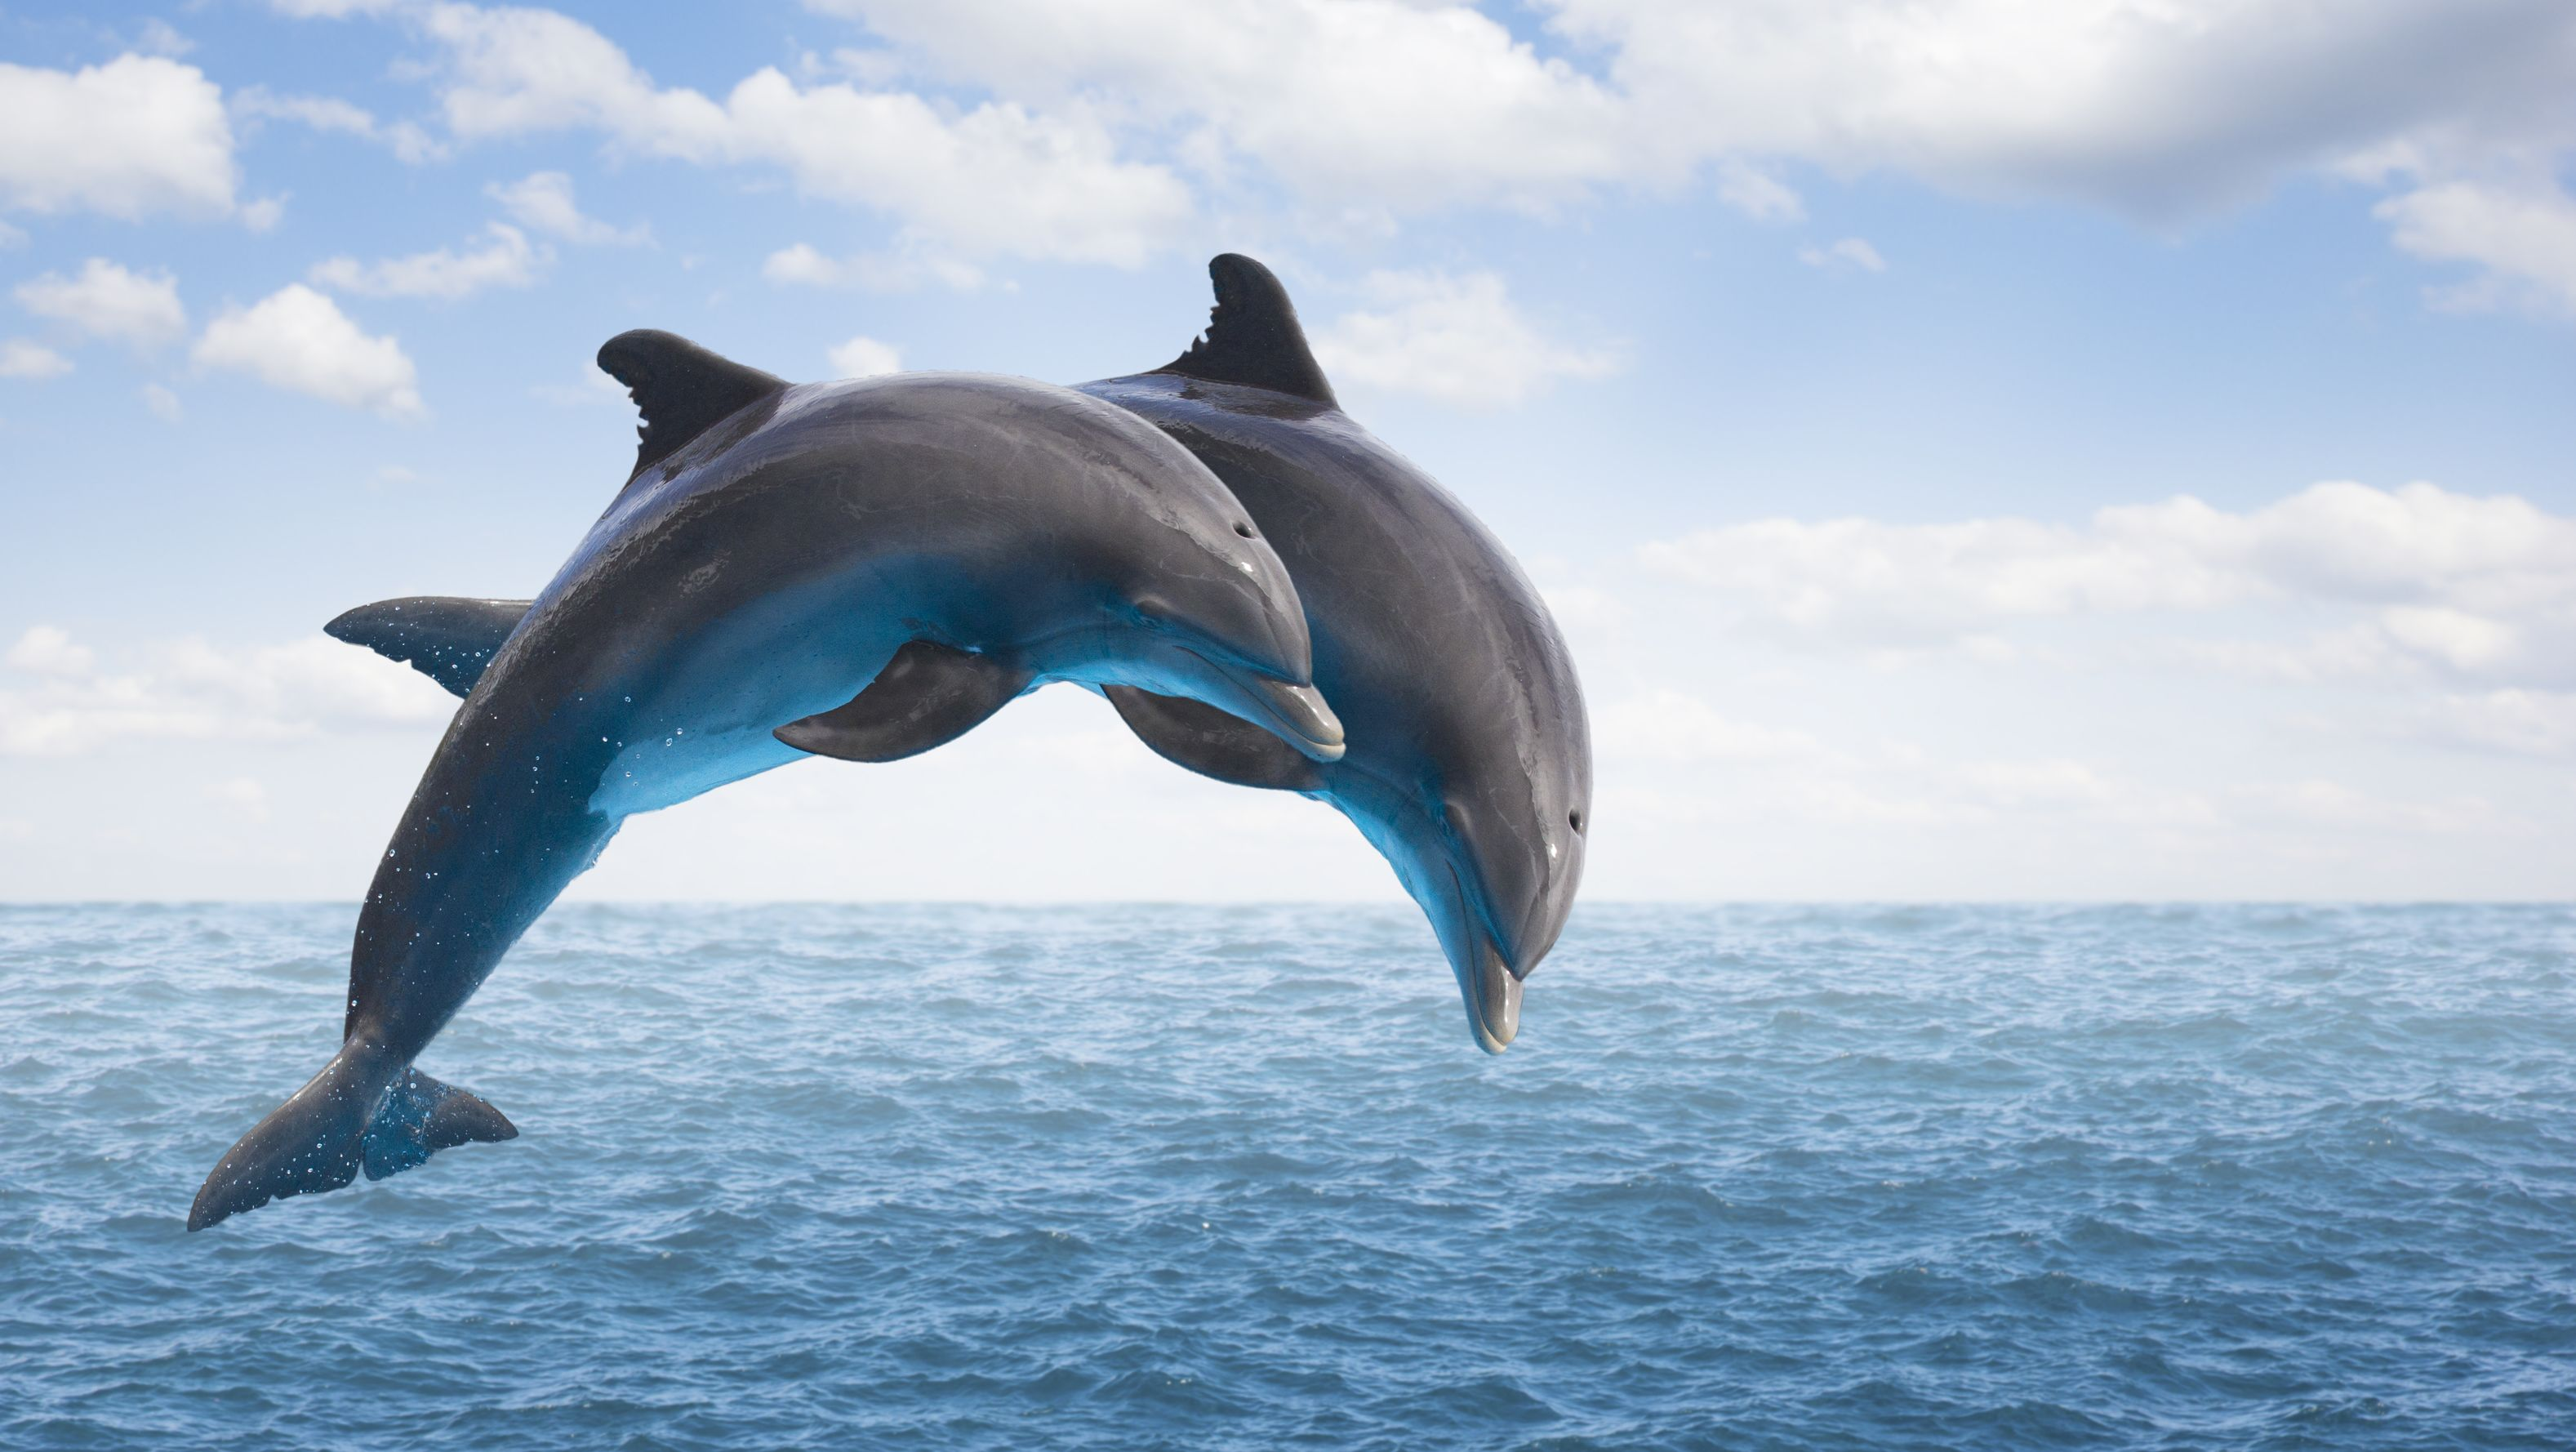 what tricks can dolphins do